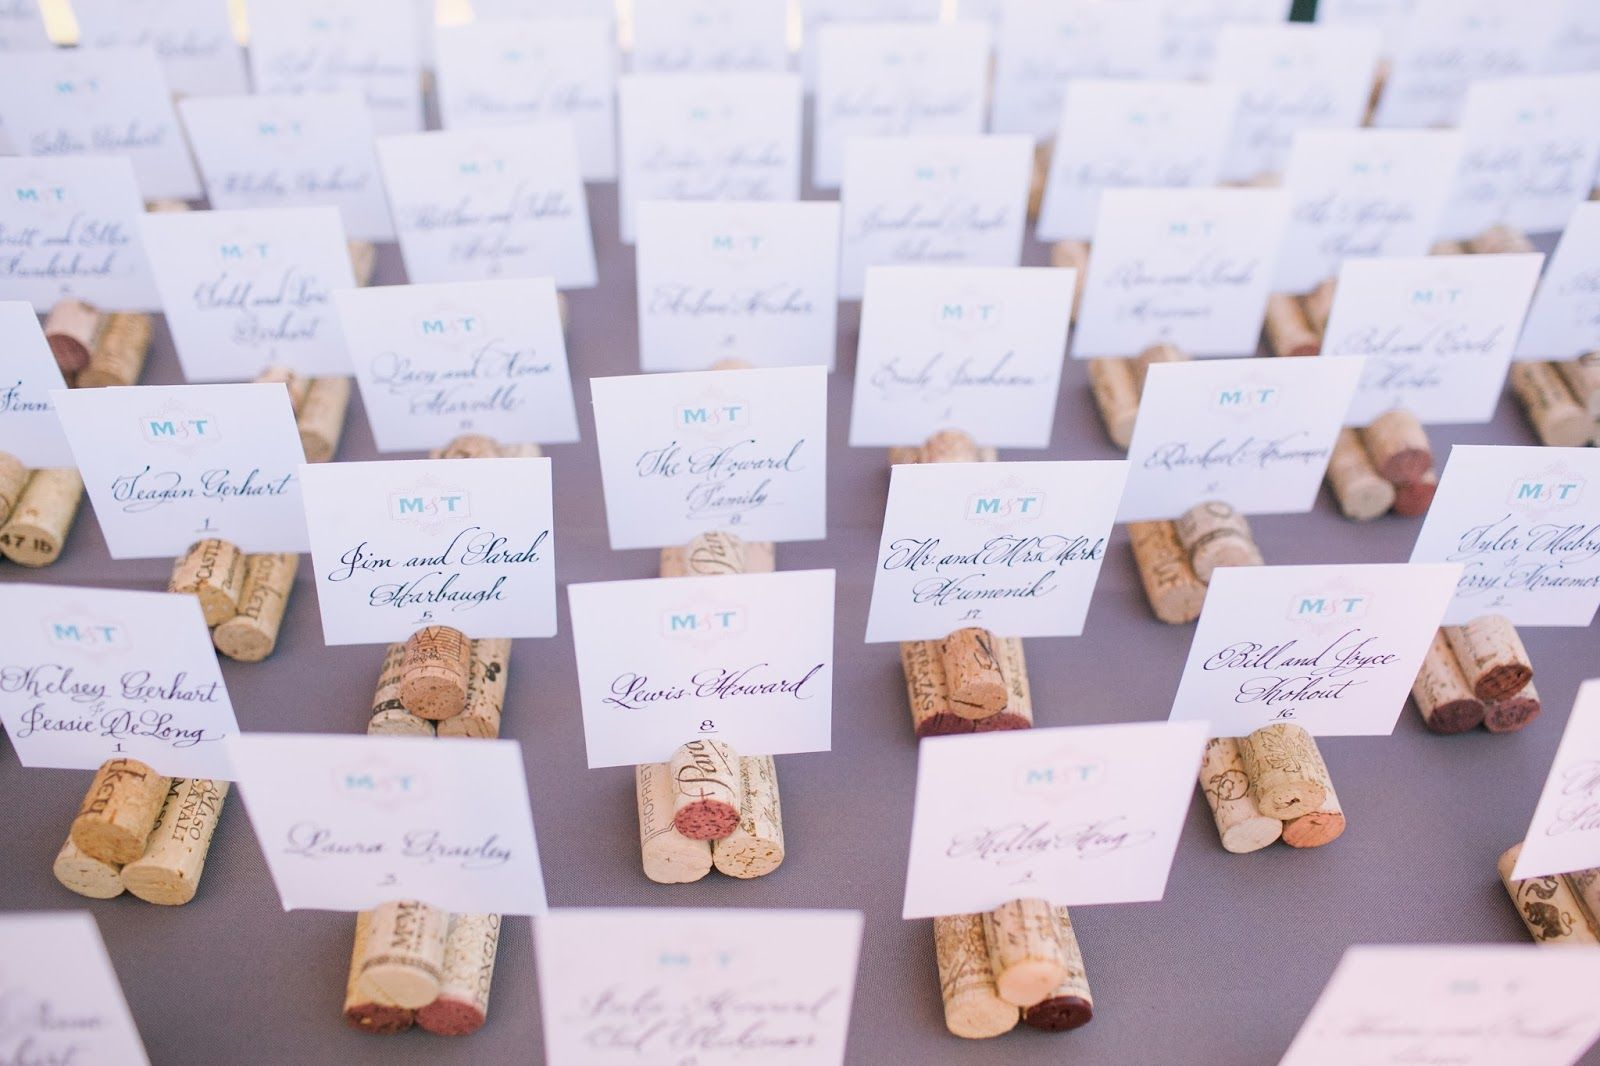 Wine Country Inspired Escort Cards Complete With Wine Cork Holders